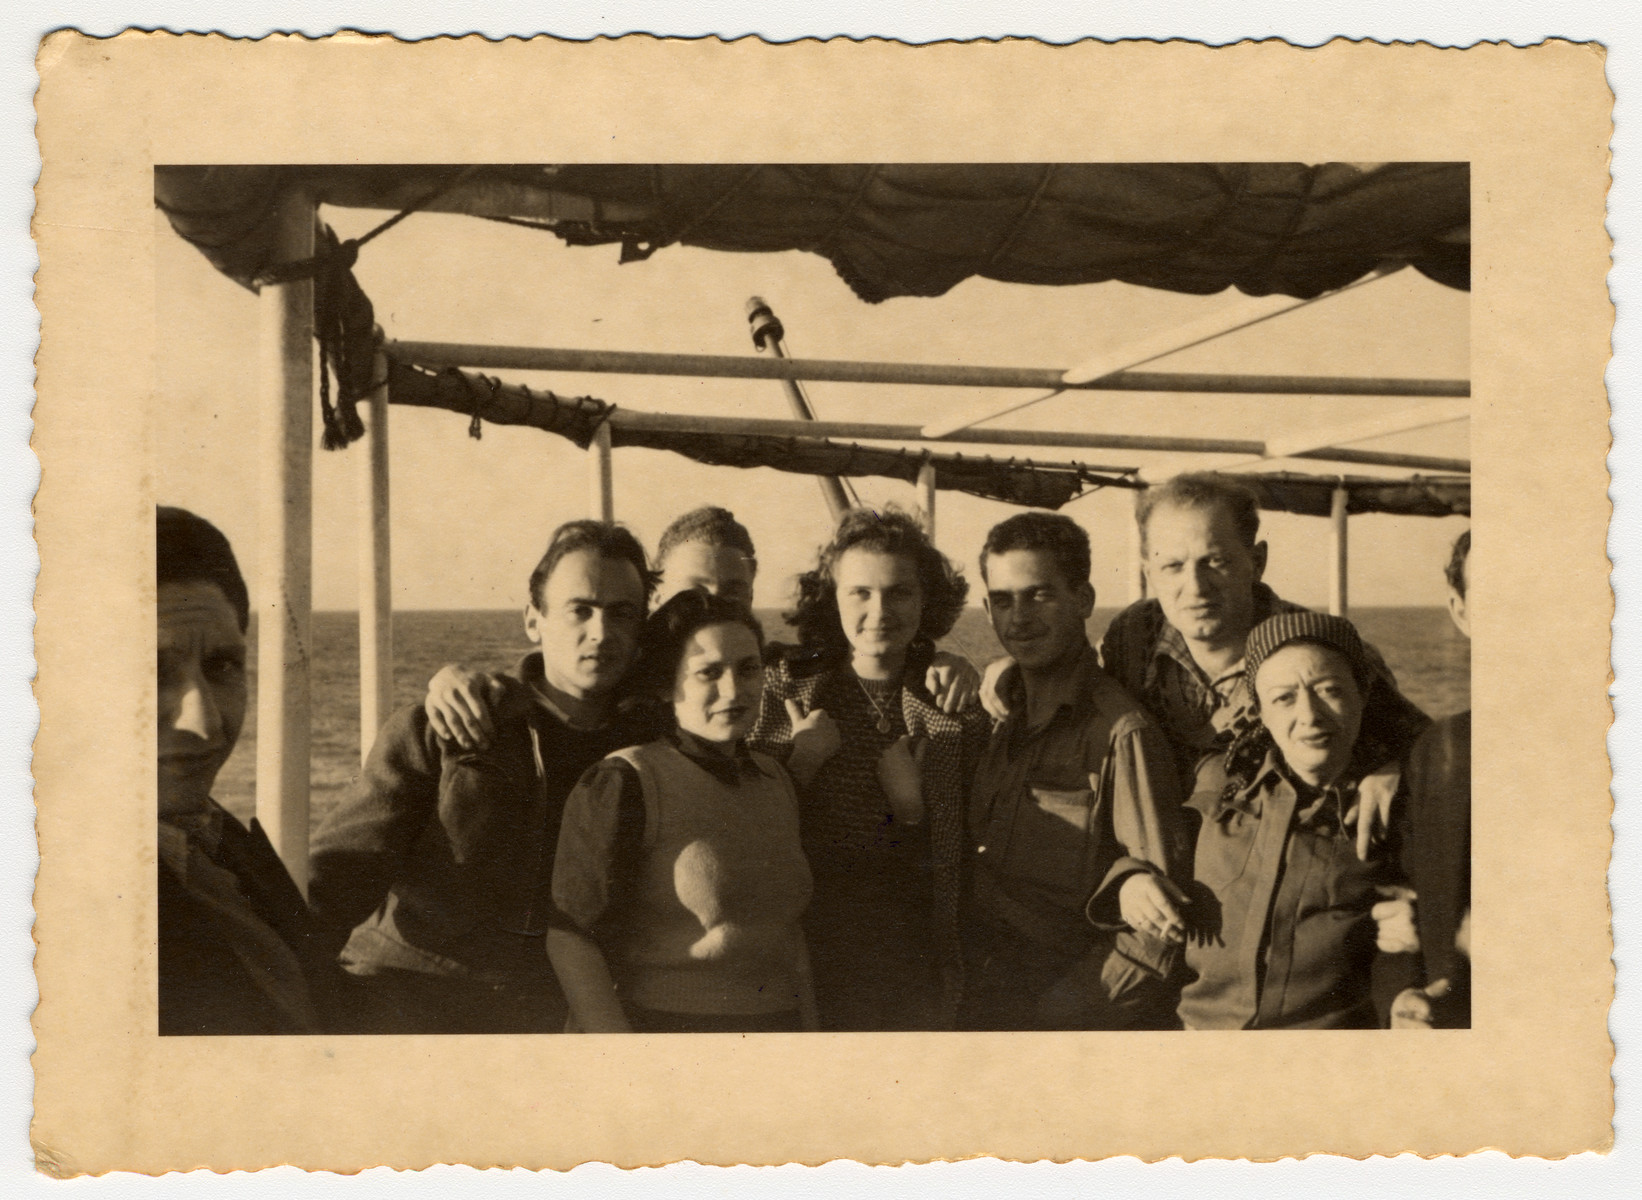 Group portrait of Romanian Jews sailing from Constanta to Israel on board the Galila.